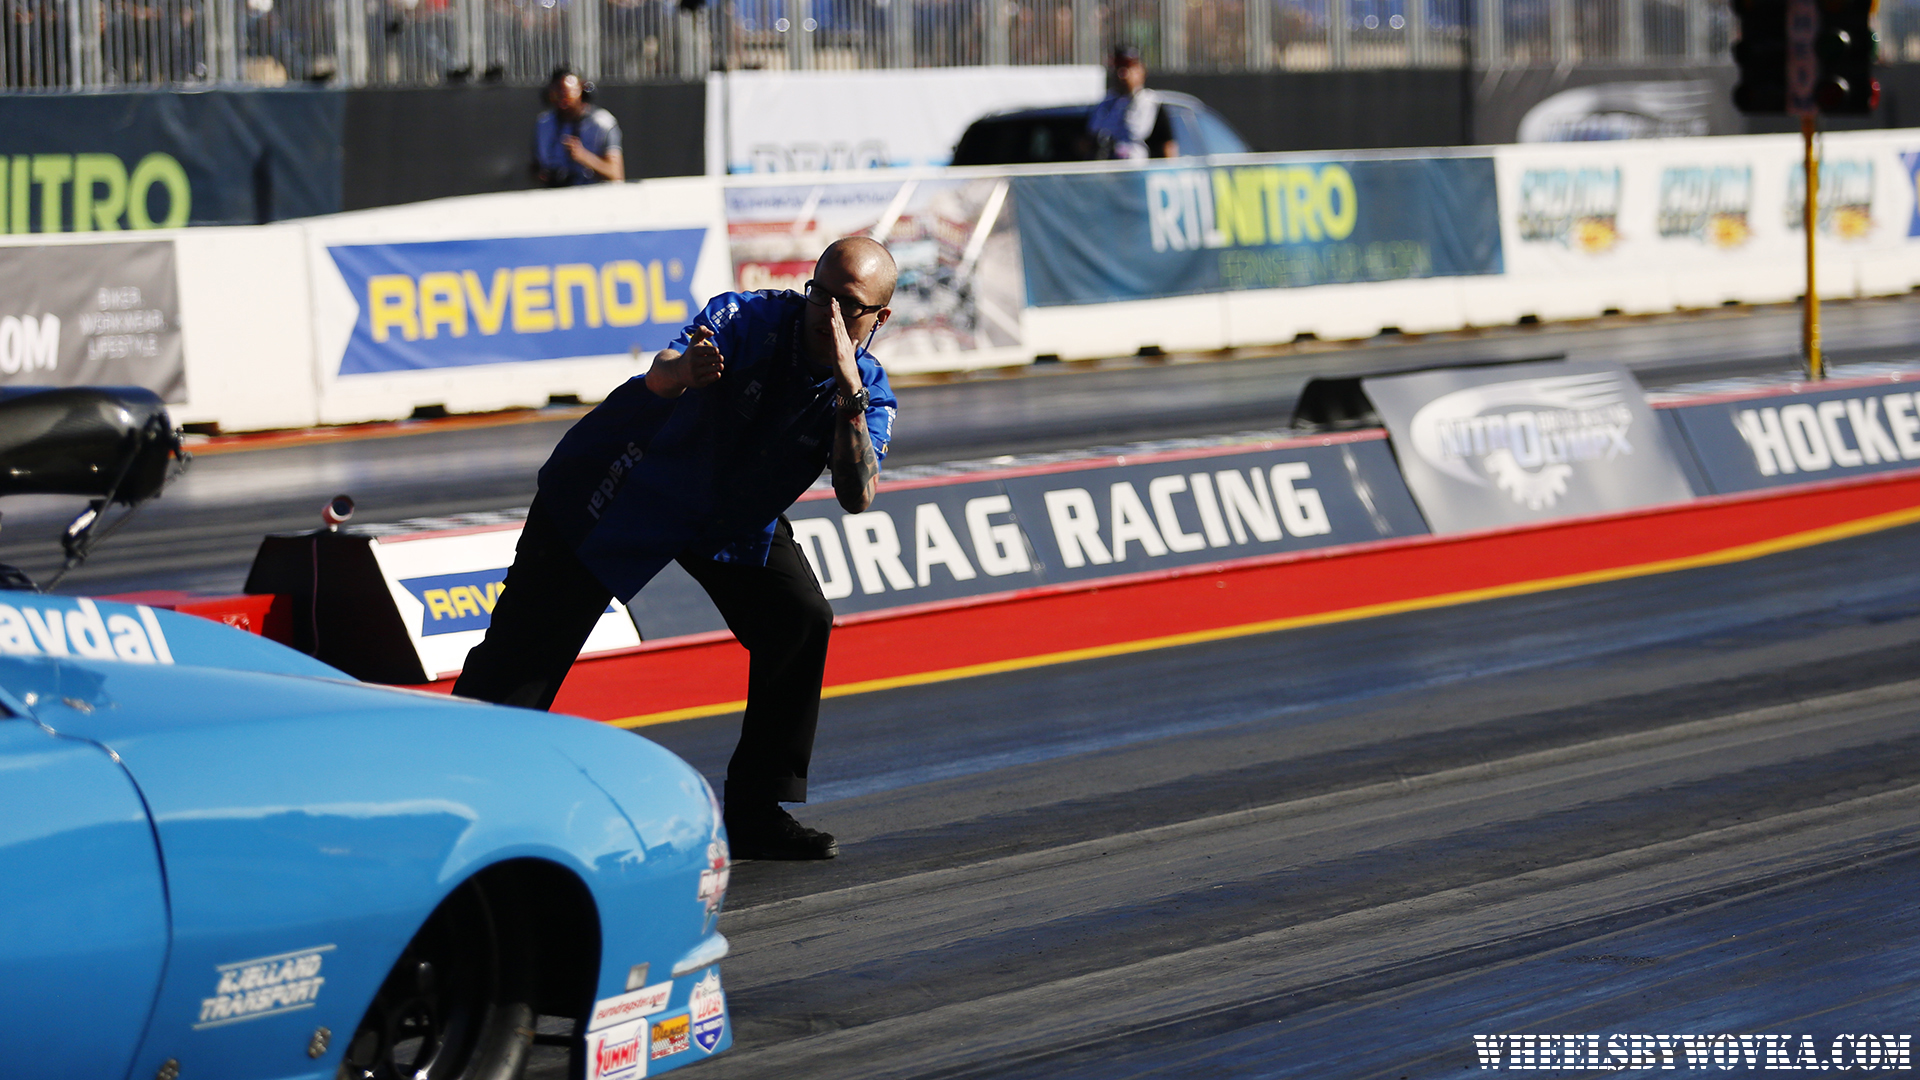 drag-racing-sign-language-by-wheelsbywovka-9